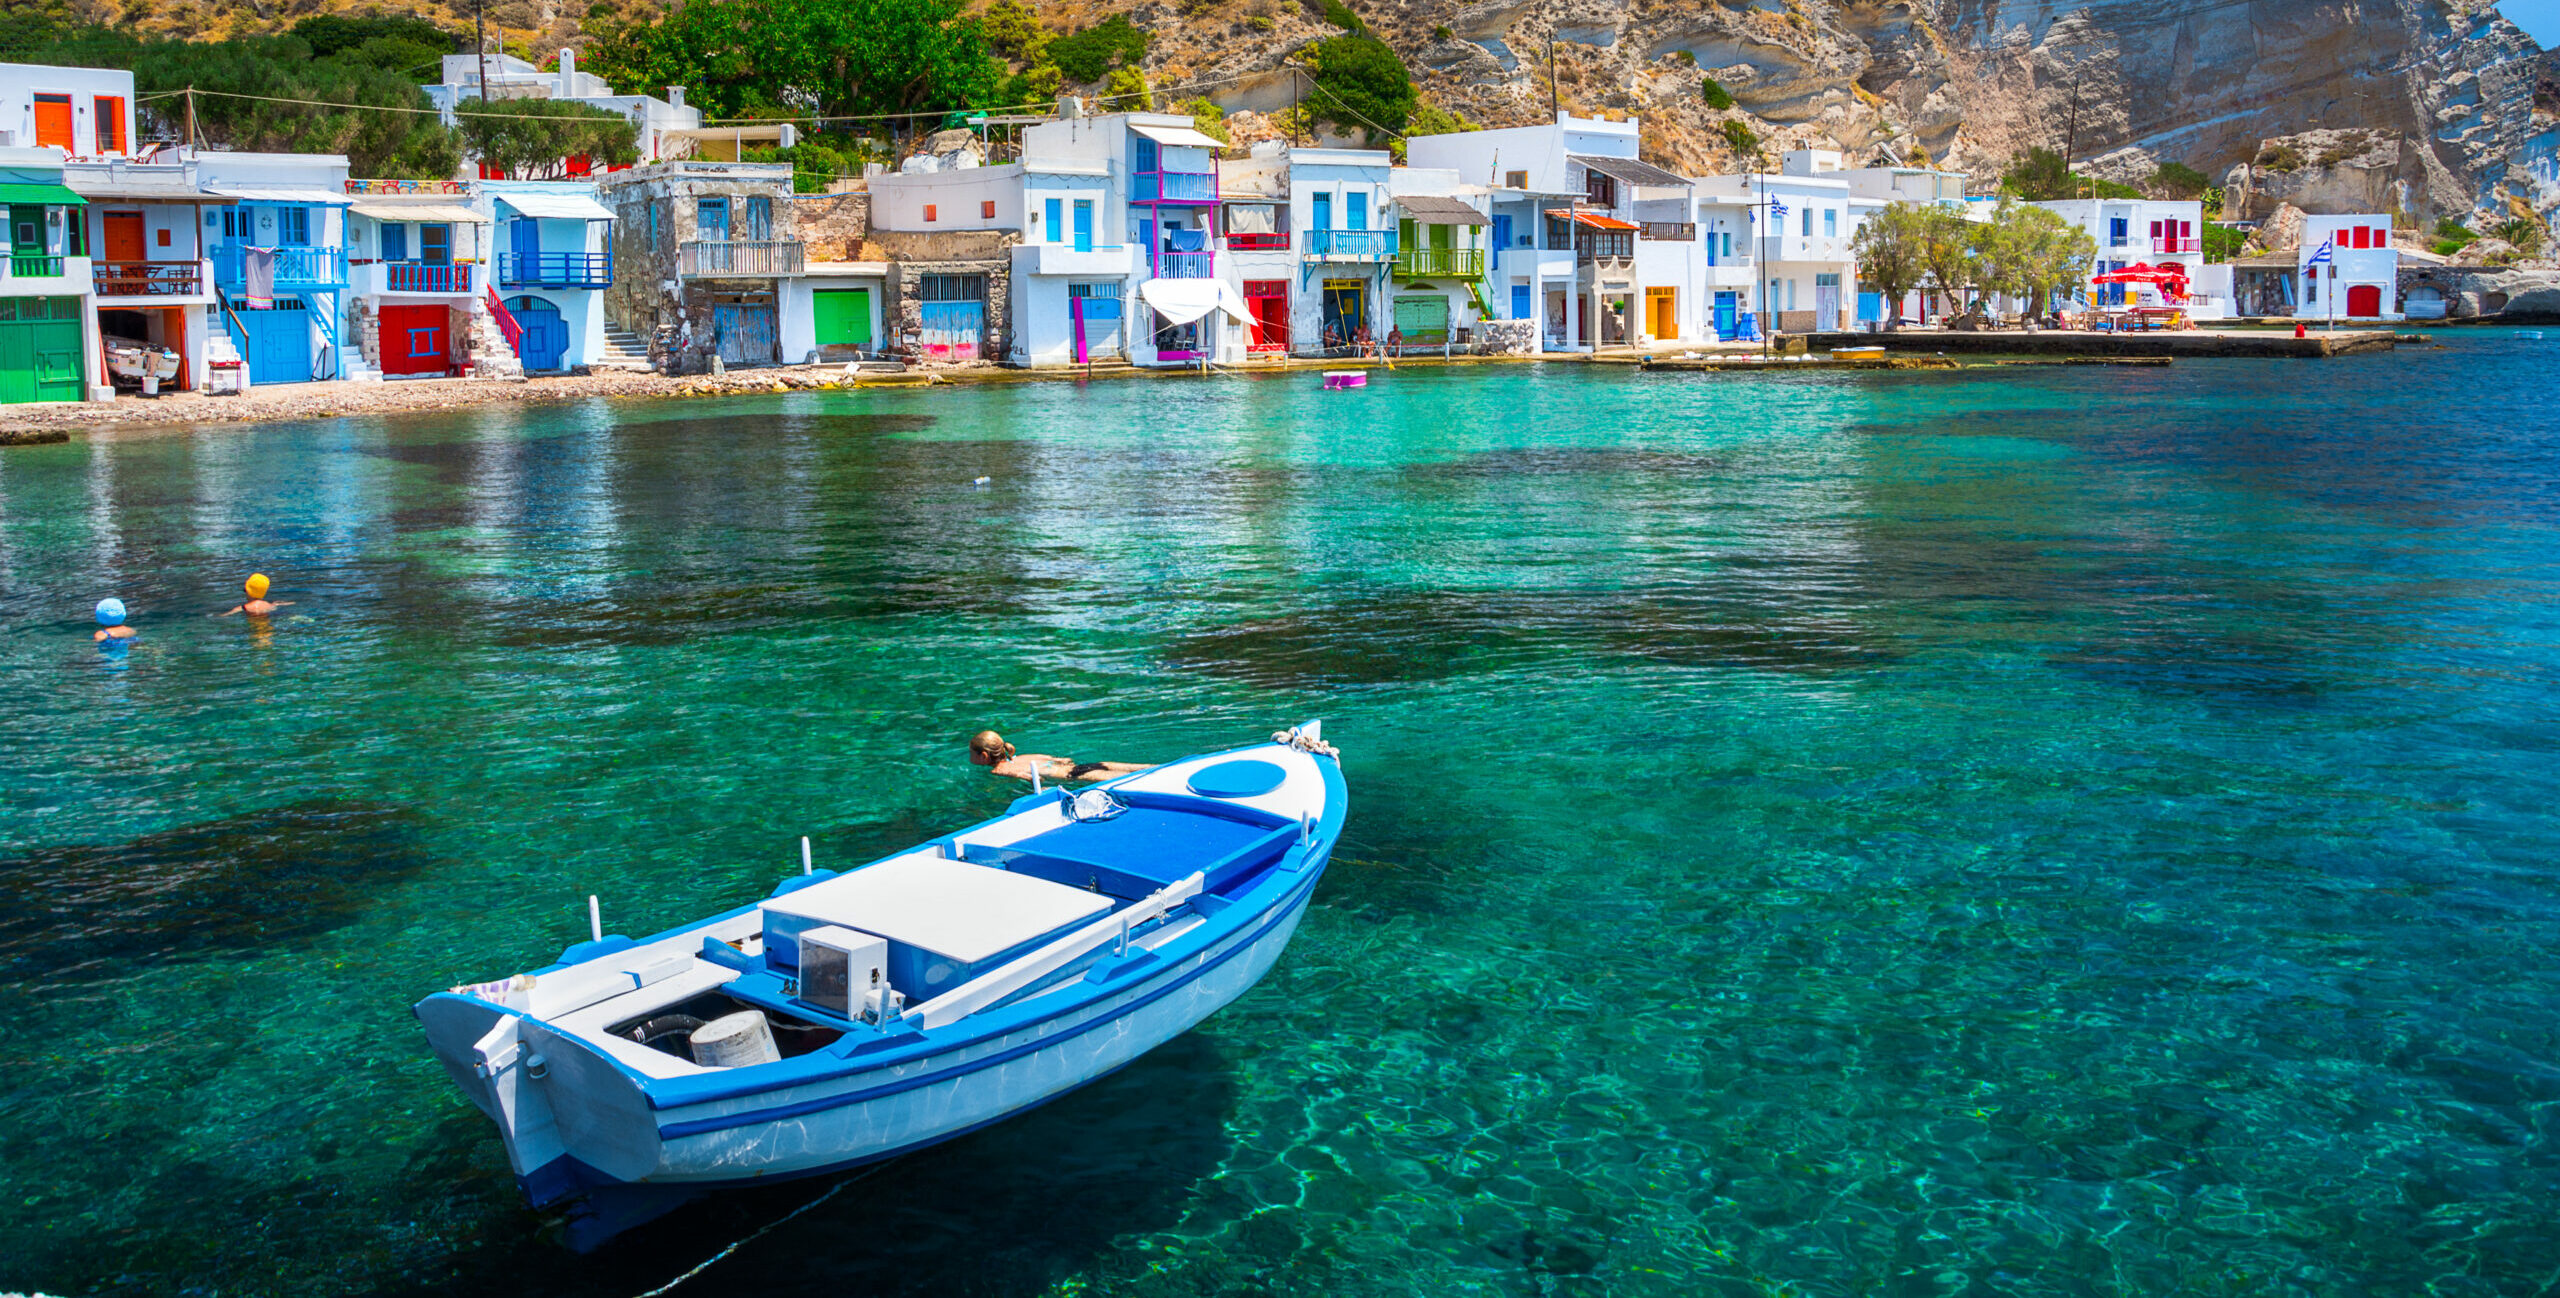 Milos: The recipe you should try on the island and cook for yourself